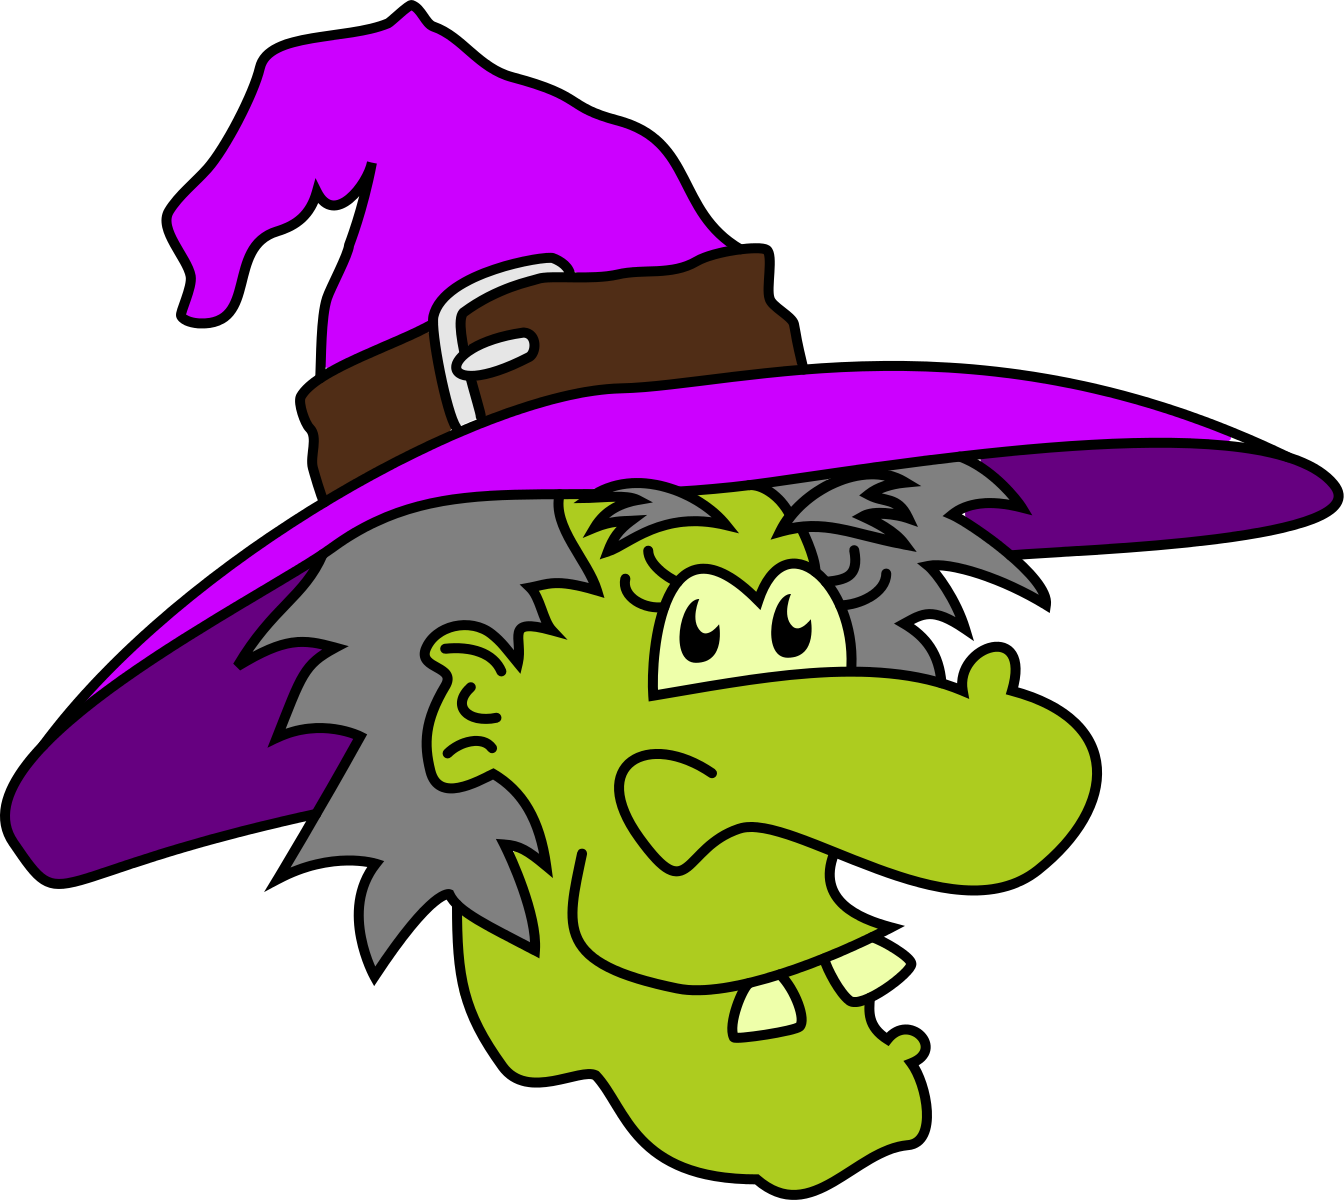 Witch clipart reading #17 Witch clipart Witch clipart